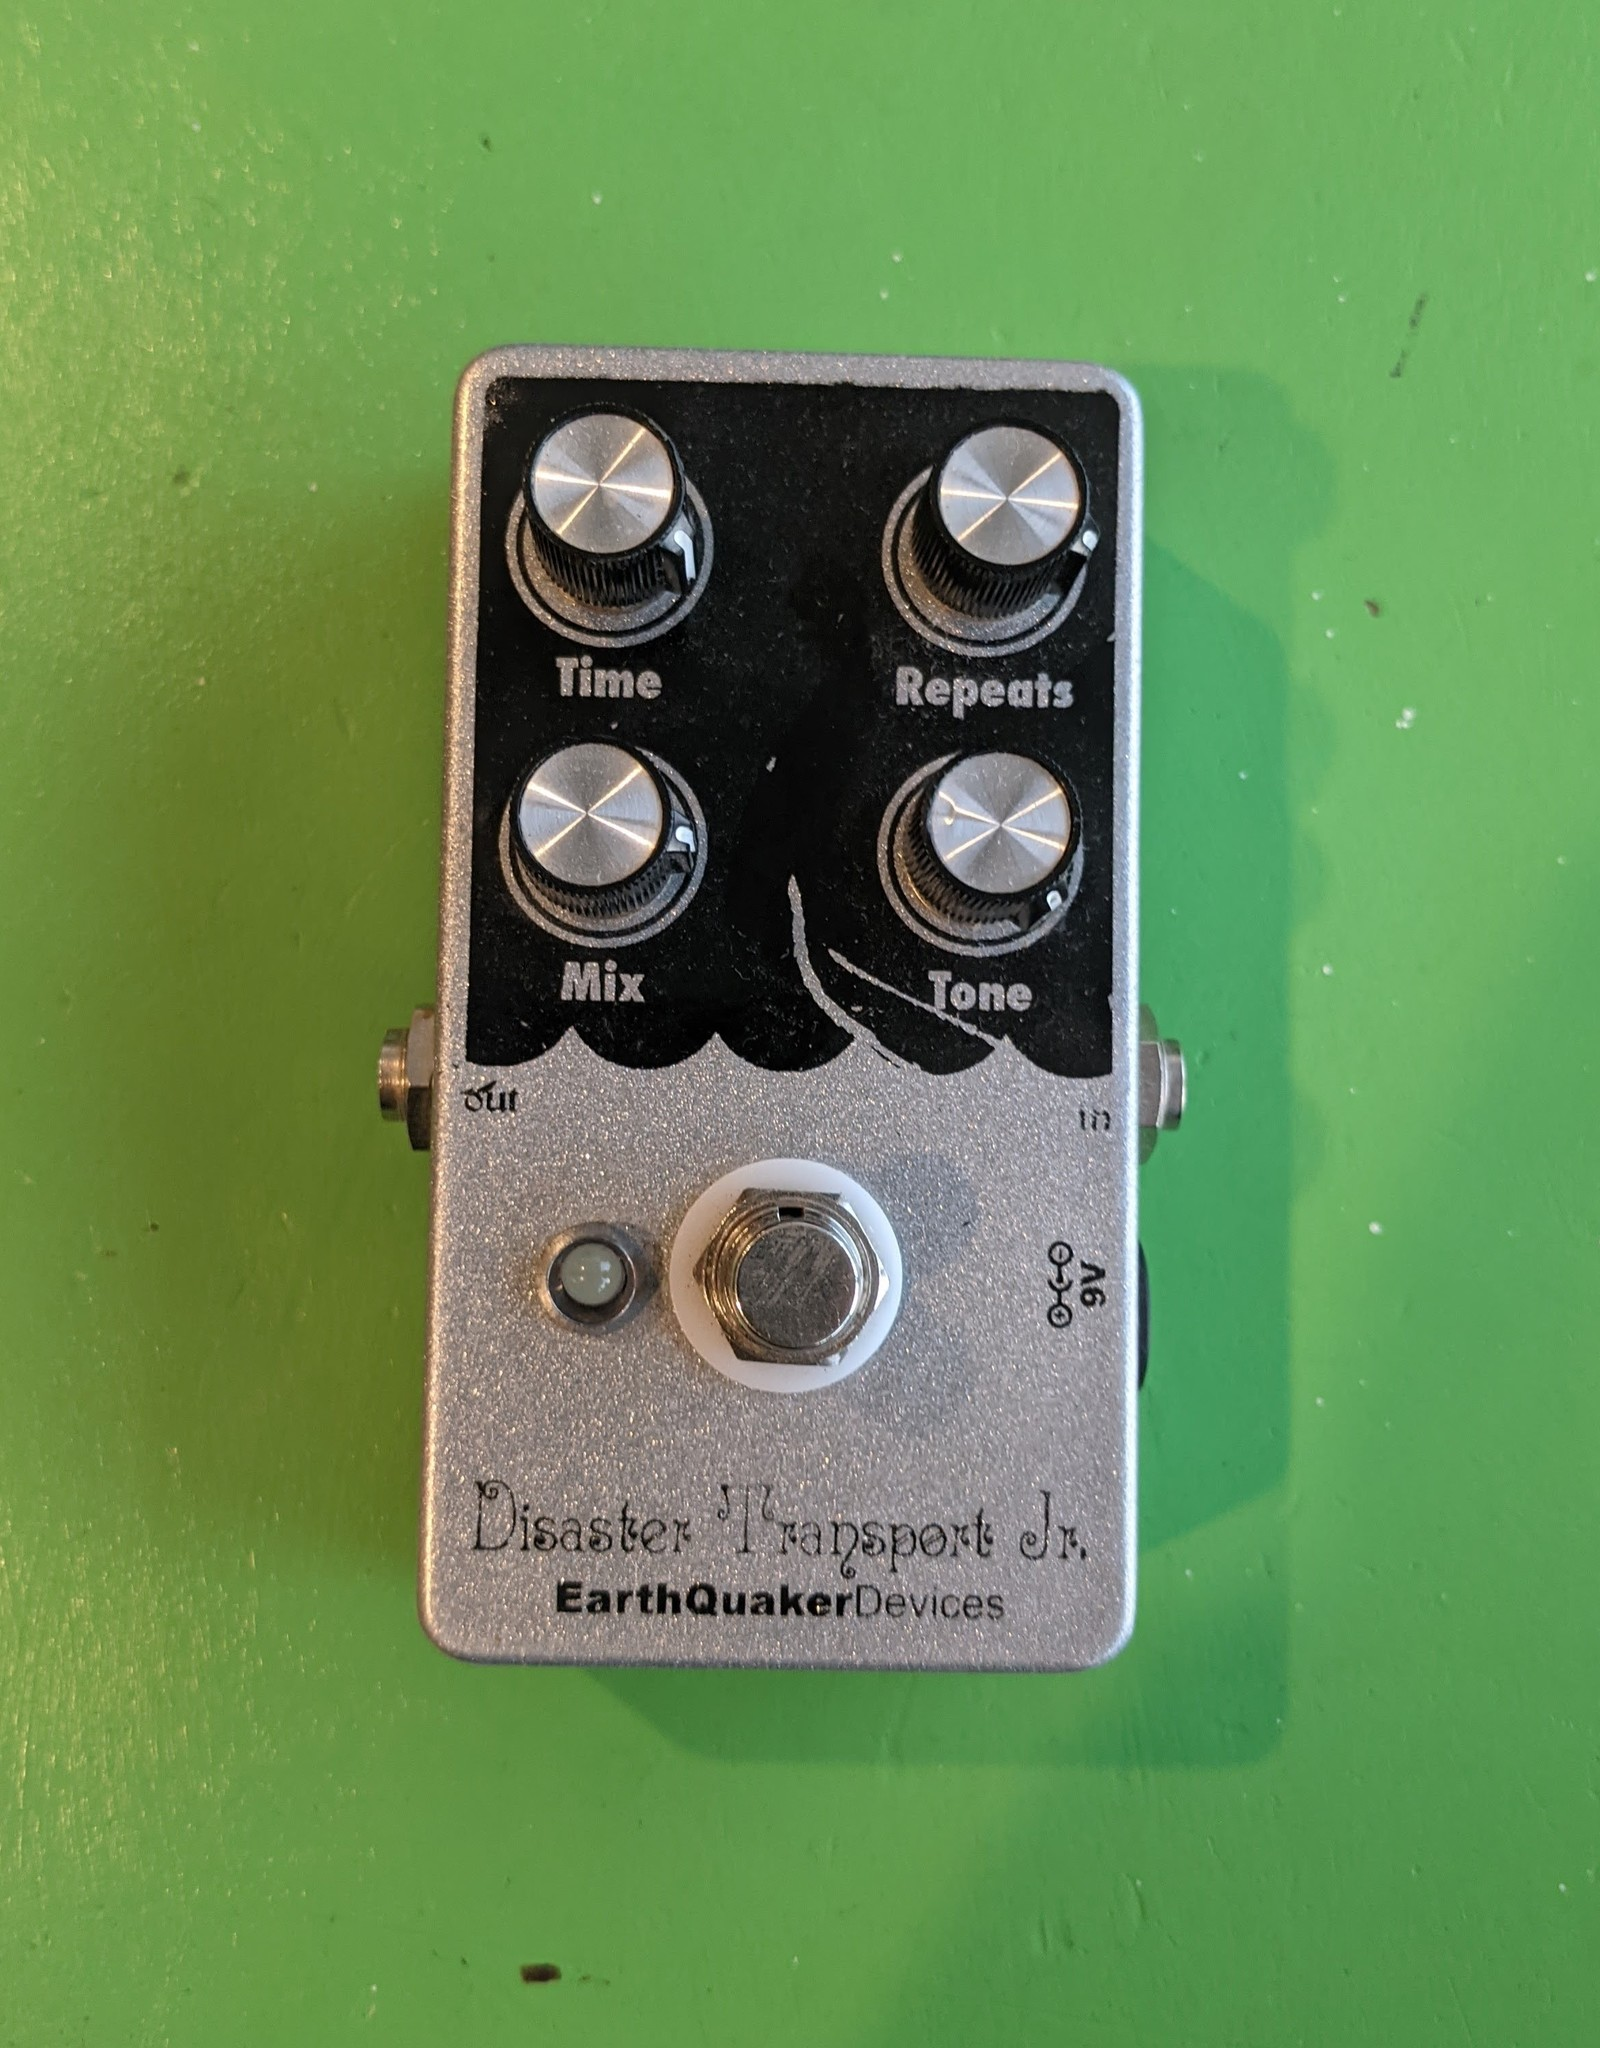 EarthQuaker Devices Earthquaker Disaster Transport Jr, Used